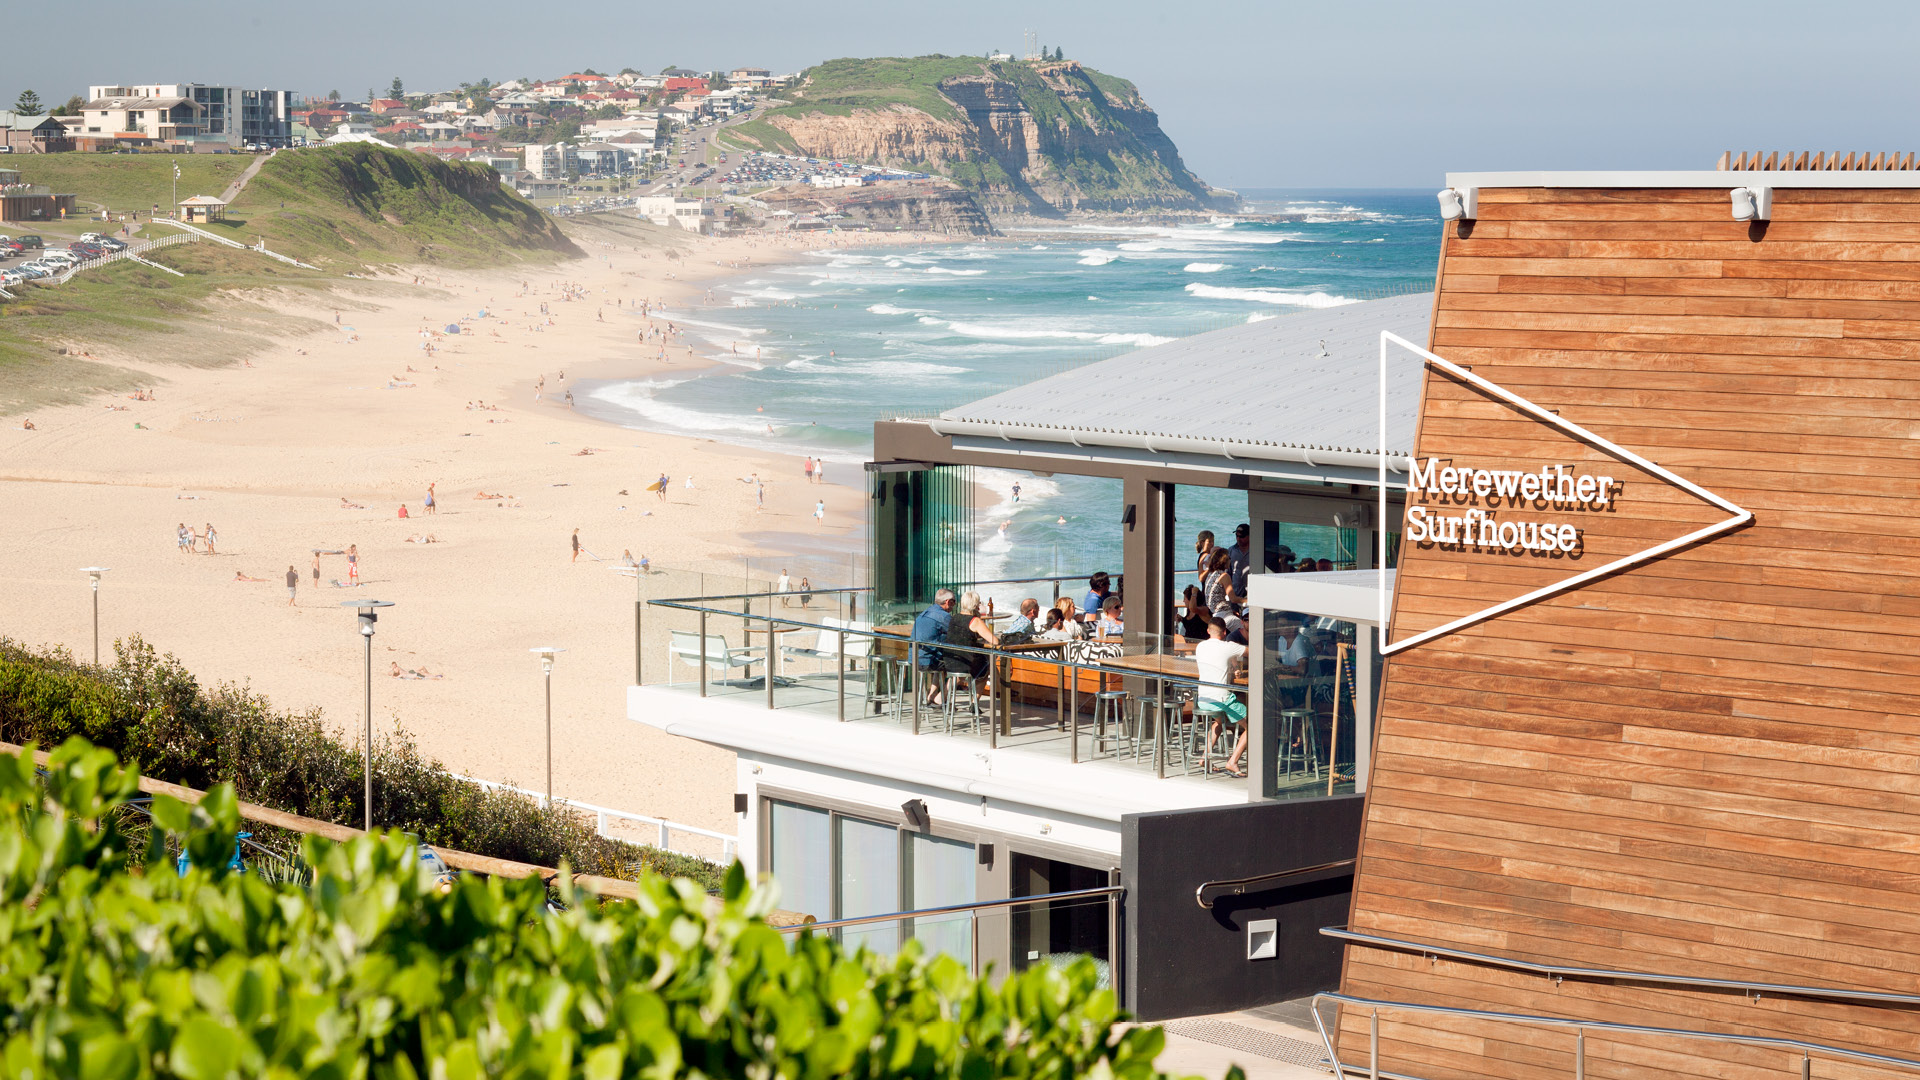 Merewether Beach House